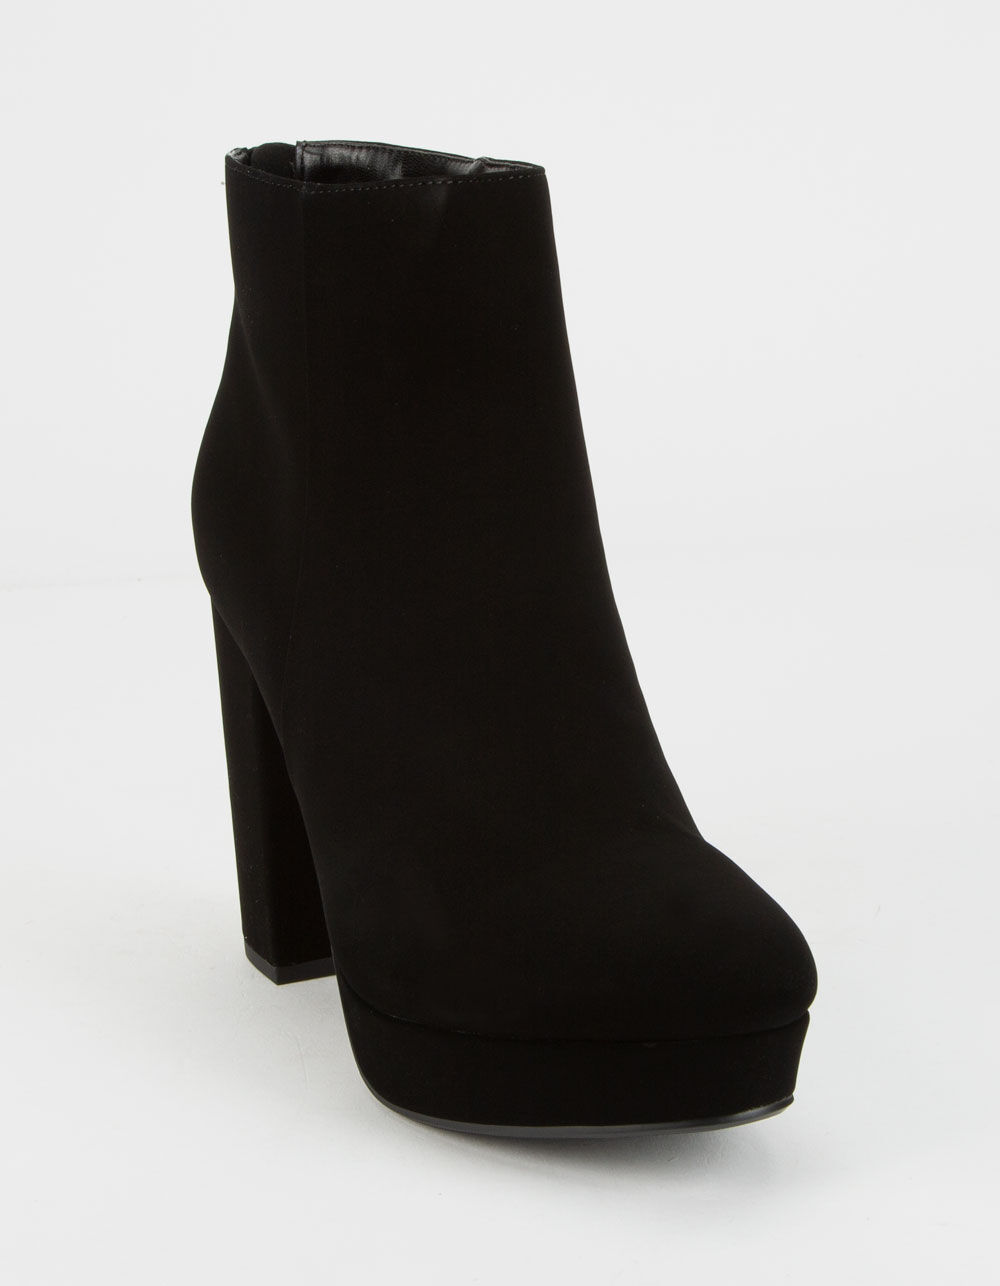 DELICIOUS Faux Suede Ankle High Heel Boot